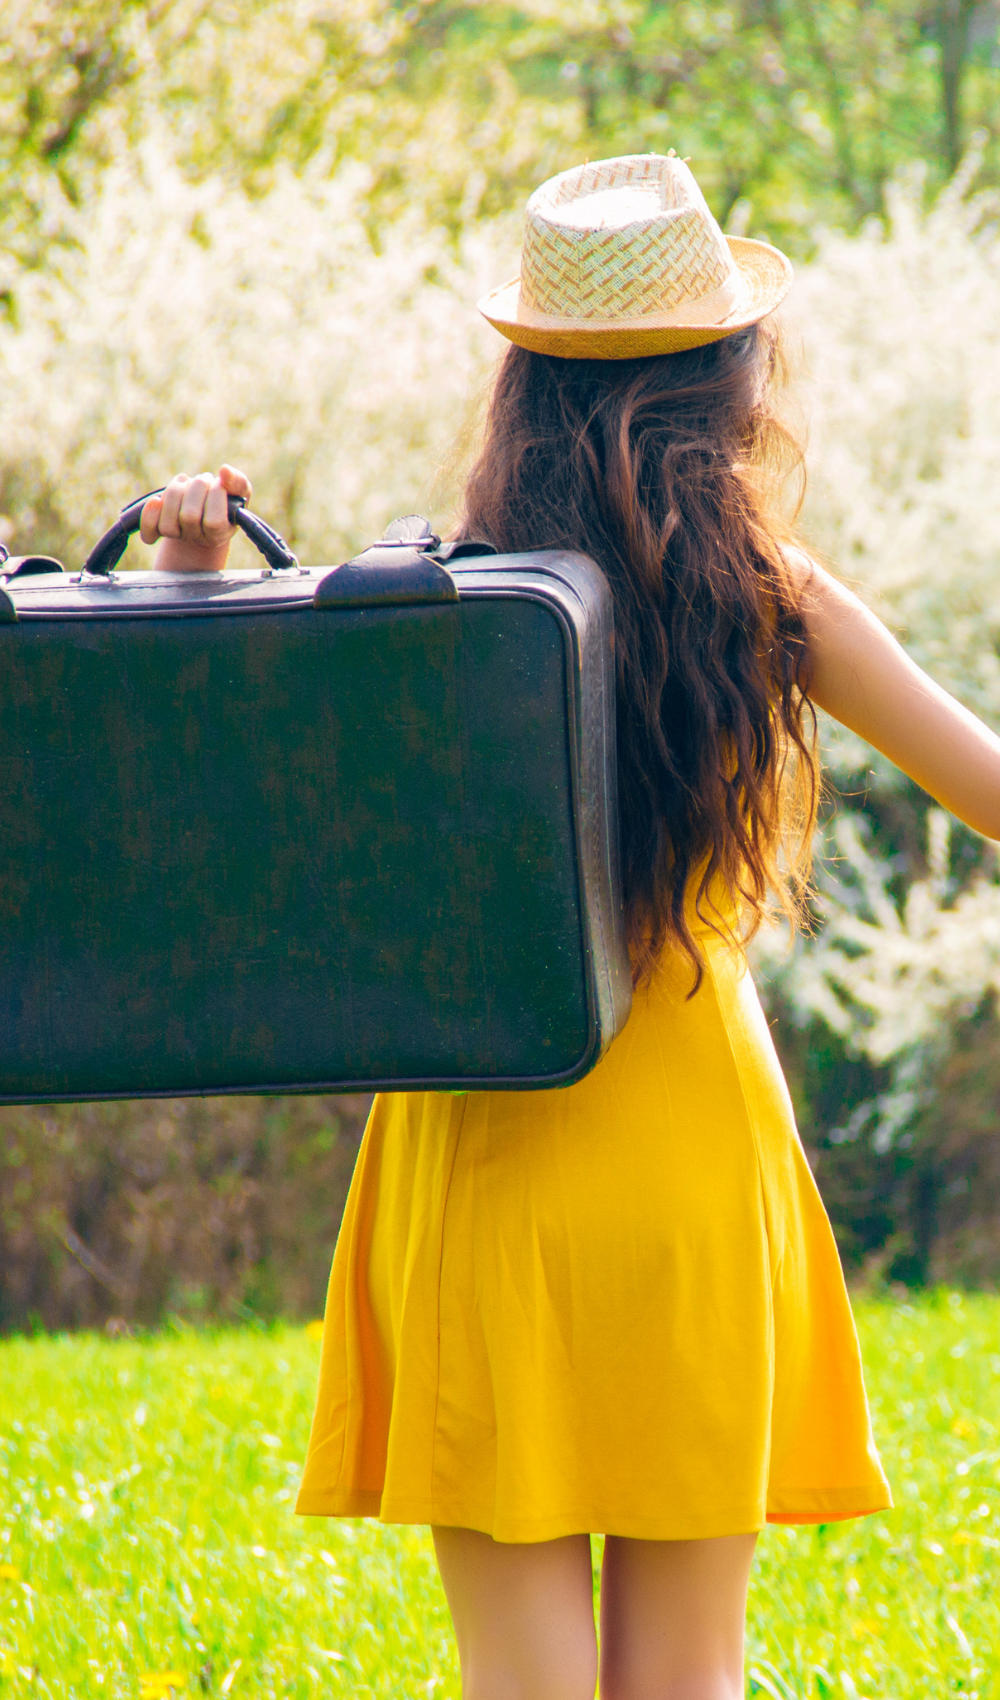 woman in a yellow dress and a hat walking away holding a suitcase over her shoulder